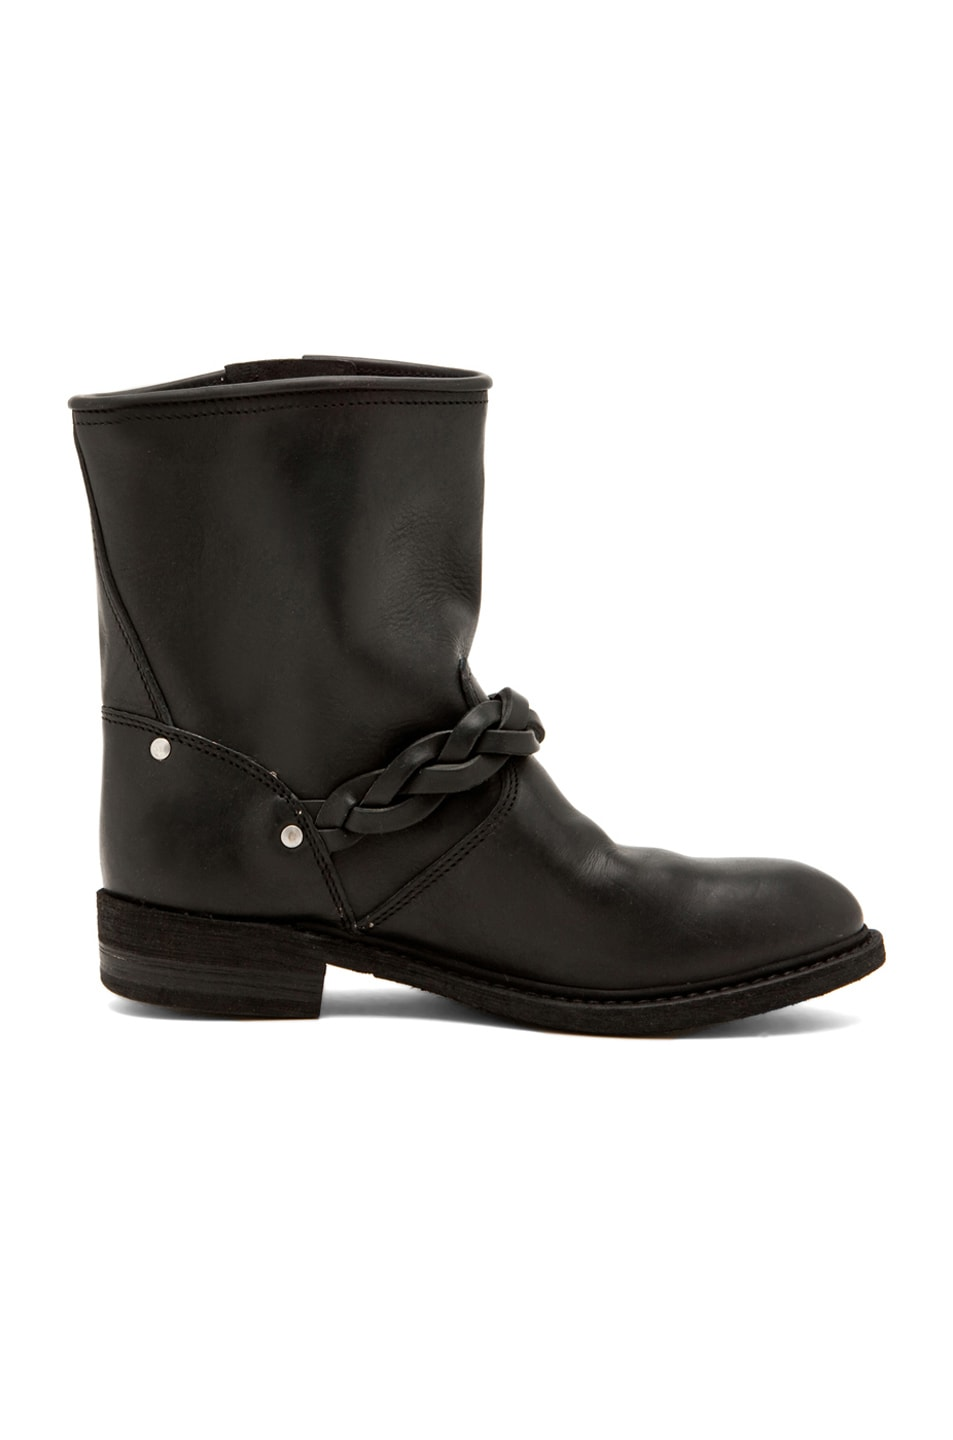 Image 5 of Golden Goose Leather Short Biker Boots in Black